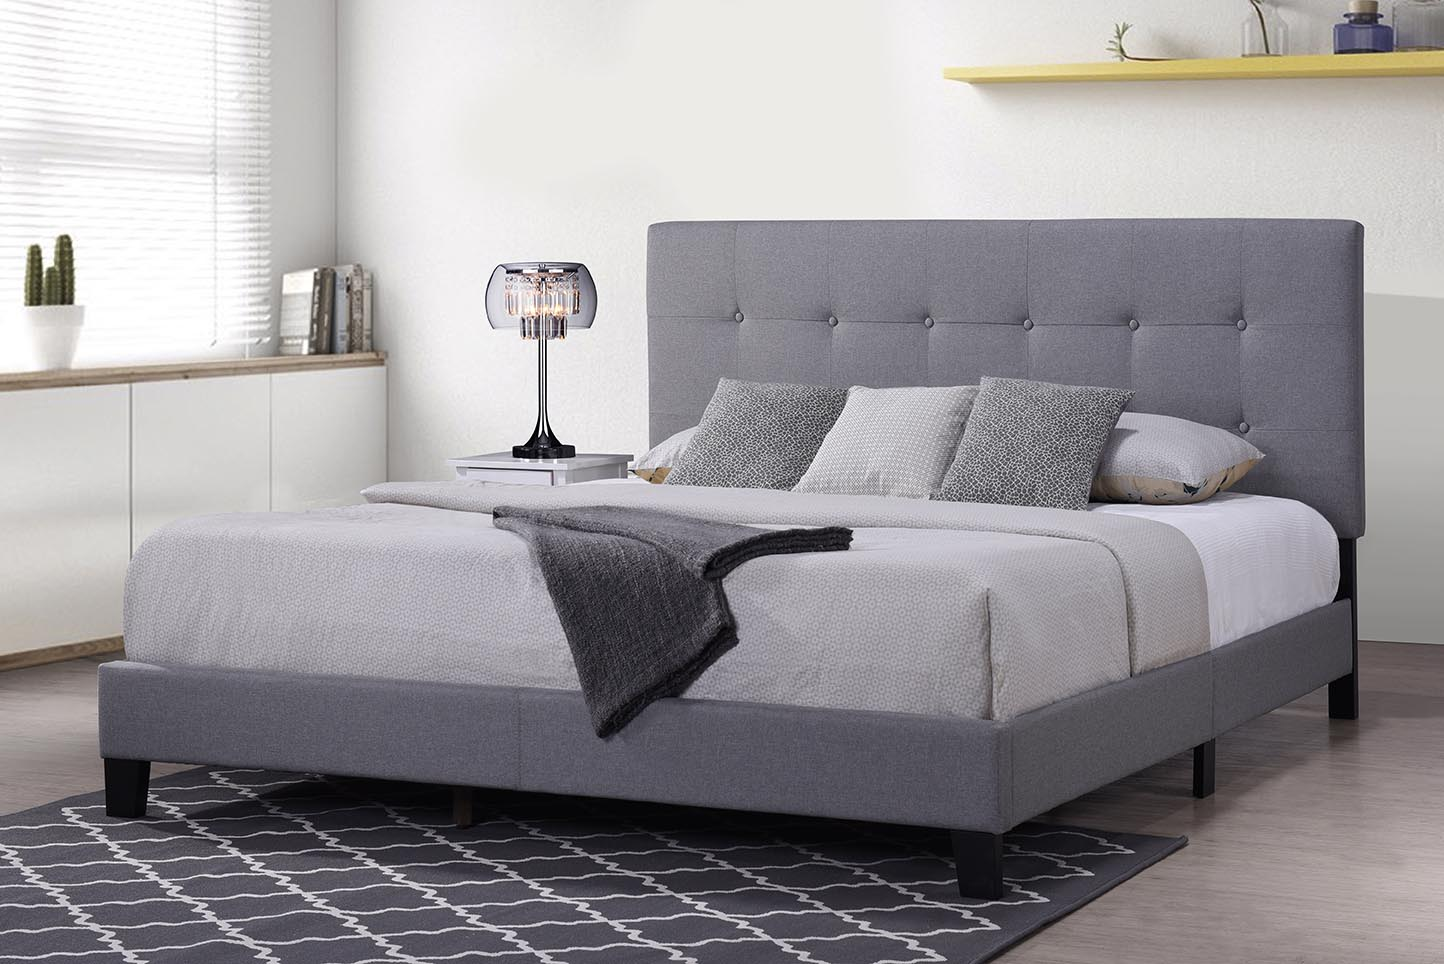 clearance upholstered platform bed frame heavy duty wood on walmart bedroom furniture clearance id=25679